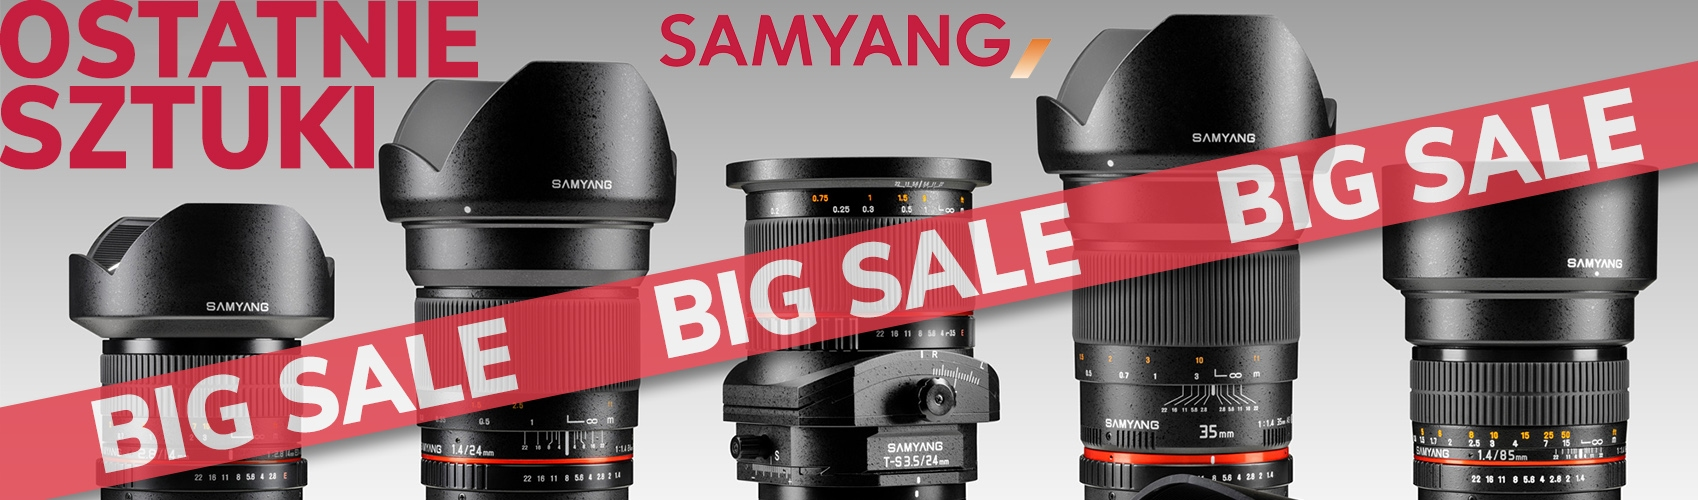 SAMYANG BIG SALE